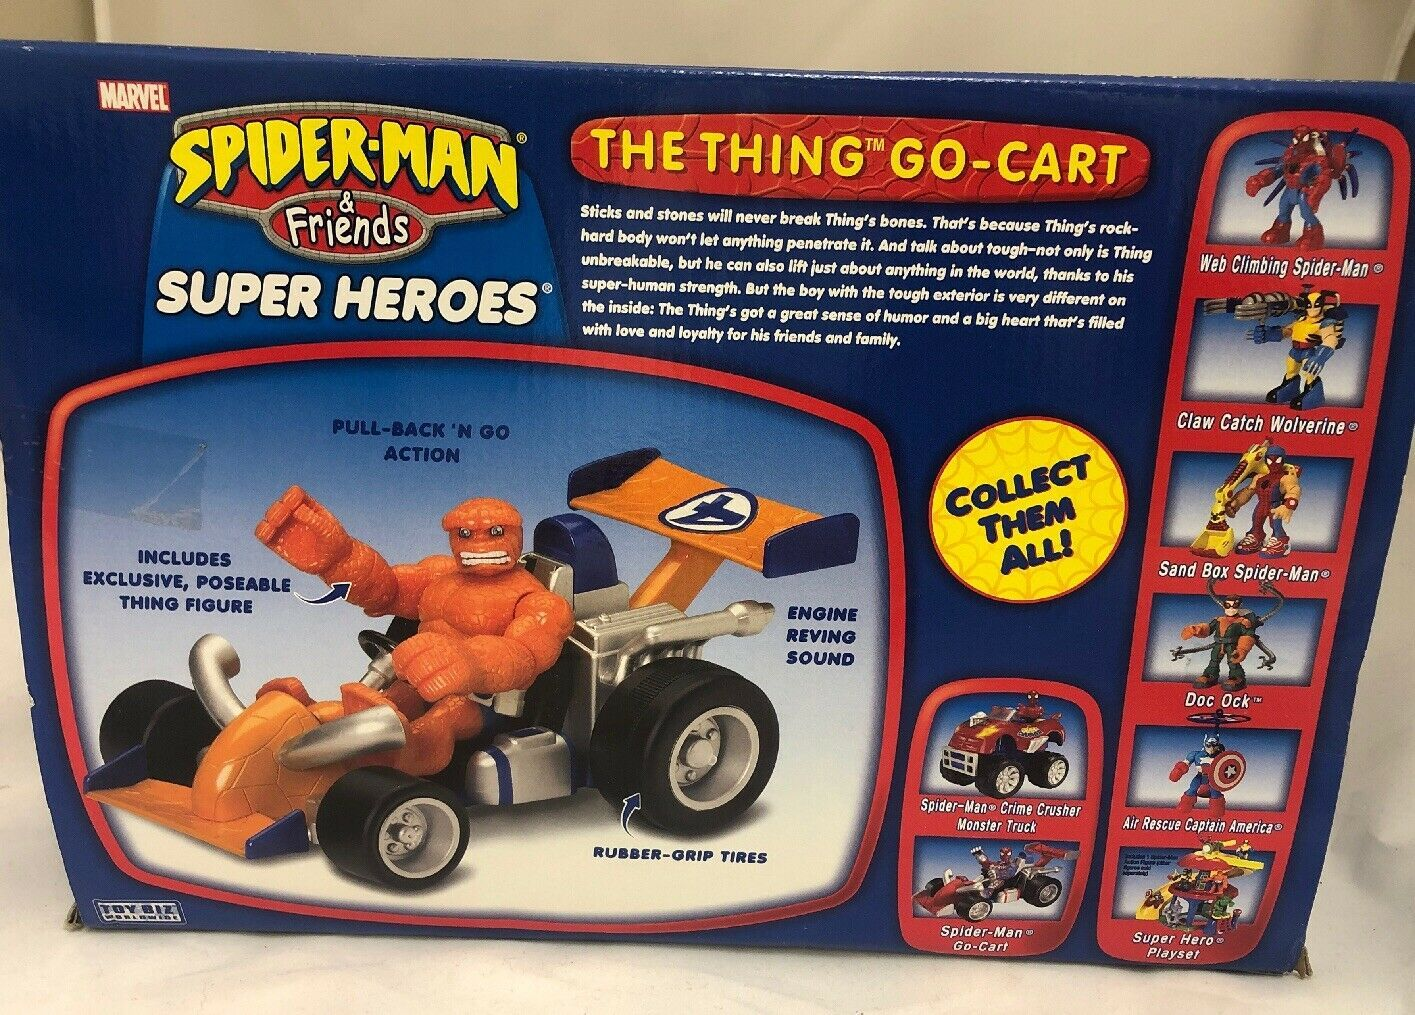 Marvel Spider-Man & Friends The Thing You Go- Cart Motorized Pull Back Go Action image 6